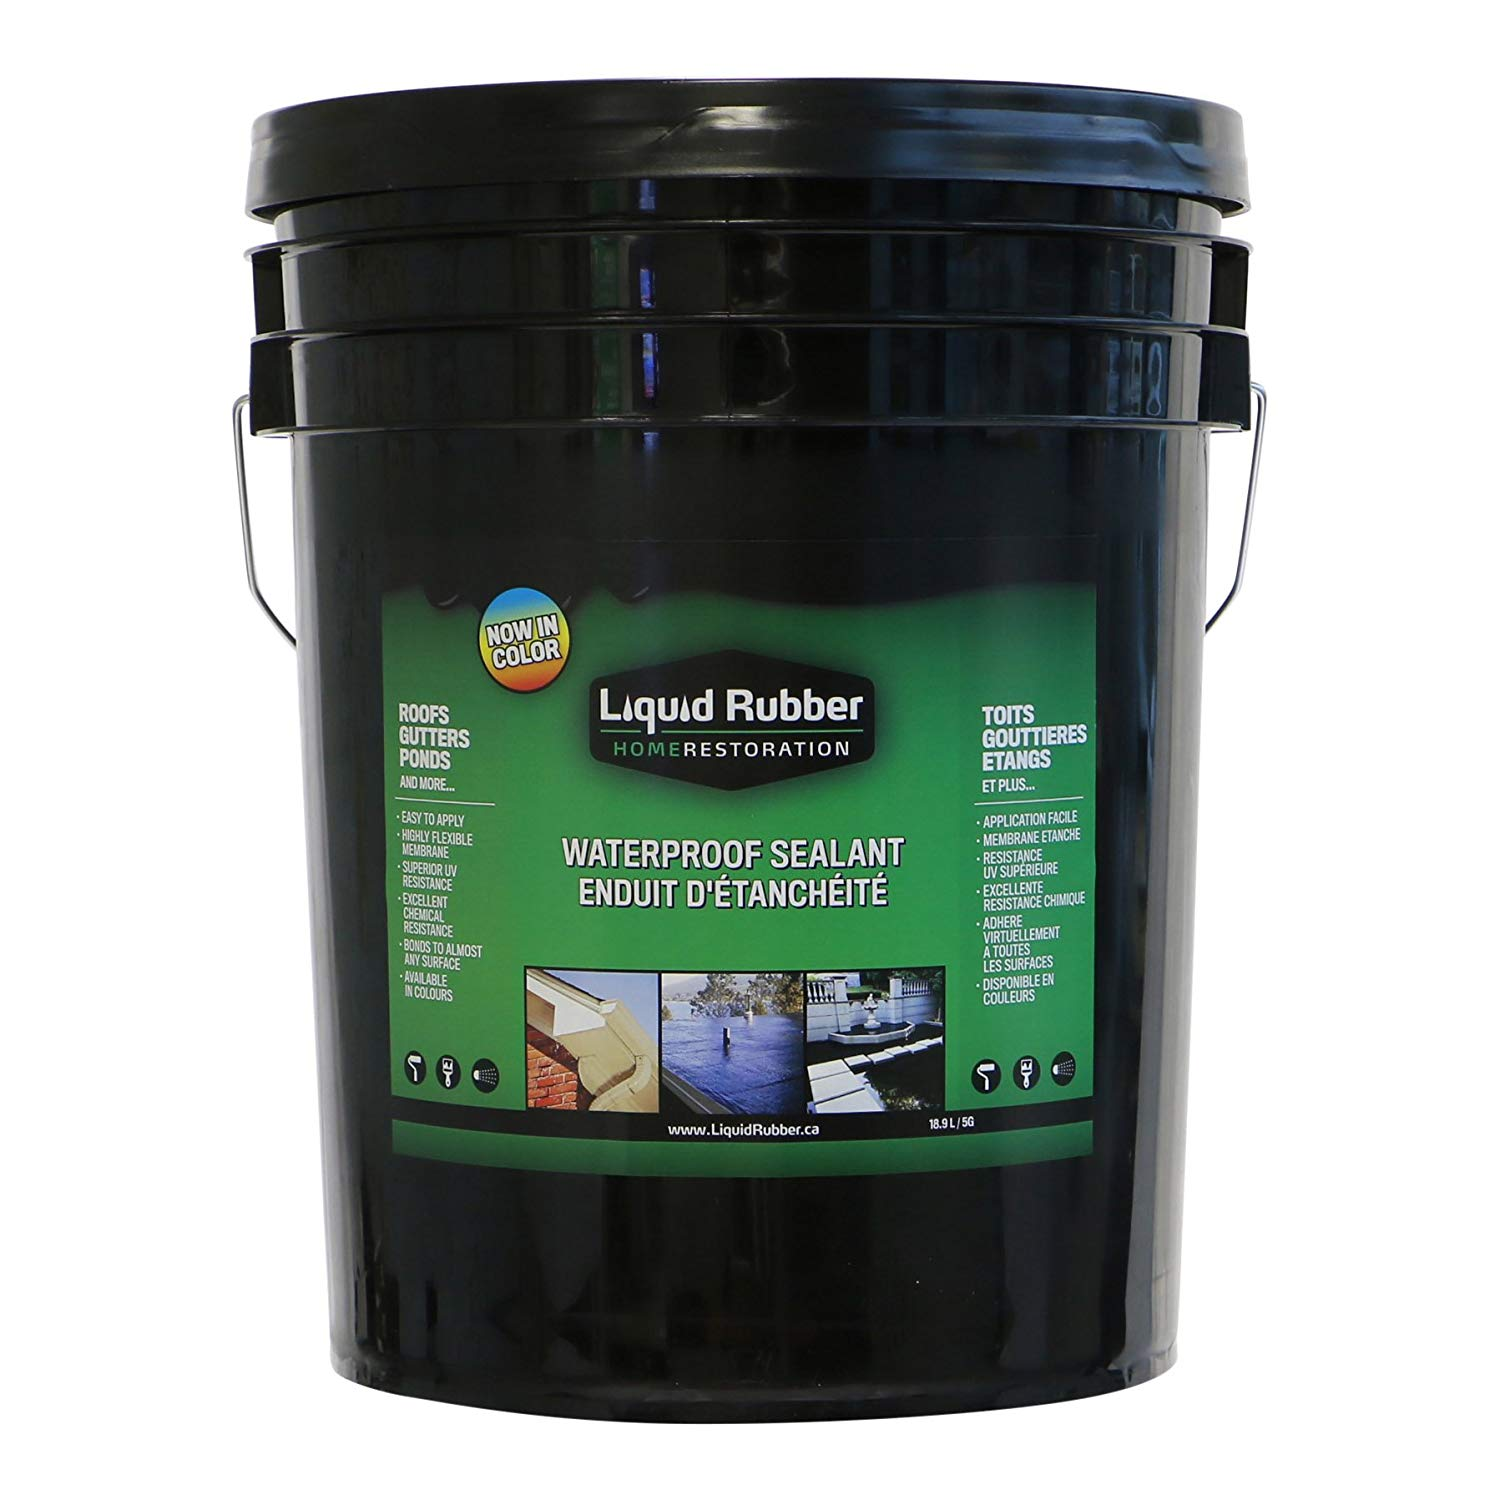 liquid rubber, liquid rubber sealant, waterproof sealant, rubber sealant, liquid rubber waterproof sealant, liquid rubber 5 gallon, liquid rubber price, waterproof rubber paint, rubber concrete sealer, is rubber waterproof, liquid rubber products, www liquidrubber ca, what is liquid rubber, liquid rubber flooring, flexible water sealant, liquid rubber for sale, black liquid rubber sealant, liquid rubber sales, spray rubber sealant for concrete, liquid water sealant, liquid rubber sealant reviews, liquid waterproof sealant, brush on waterproof sealant, liquid rubber coating, liquid rubber membrane for waterproofing, liquid rubber waterproofing membrane, rubber waterproofing, liquid rubber waterproofing, rubber protective coating, rubber waterproofing membrane, the waterproofing shop, liquid rubber roof, rubber dipping liquid, liquid rubber canada inc, liquid waterproofing products, liquid rubber membrane, protective coatings and sealants, epdm liquid rubber, liquid rubber roof coating, rubber roof coating, epdm roof sealant, rubber roof sealant, liquid rubber roof sealant, liquid epdm, best roof sealant, roof sealant, liquid flat roof, roof leak repair sealant, rubber roof repair, roof sealant for leaks, roof leak repair products, repairing rubber membrane flat roof, liquid rubber roofing material, liquid rubber roll on roofing, best roof sealant for leaks, liquid rubber roof repair, rubber roof patch, liquid rubber white liquid epdm roof coating, liquid rubber tube, epdm liquid rubber roof coating, rubber in a can, epdm seam sealer, epdm patch material, flex seal flat roof, liquid rubber base, roof patching material, how to patch a rubber roof, liquid rubber white, rubber seal roofing, rubber roof cement repair, roof repair products, liquid rubber white liquid epdm roof coating 5 gallon, blue max, ames blue max, blue max waterproofing, blue max liquid rubber, ames liquid rubber, blue max adhesive, ames blue max liquid rubber, ames blue max instructions, ames research blue max, ames waterproofing, ames waterproofing product reviews, ames blue max coverage, blue max sealer, liquid rubber paint, blue max one, ames blue max trowel grade, blue max paint, rubber basement sealer, blue max sealant, blue max ames, blue rubber paint, spray rubber foundation waterproofing, blue seal waterproofing rubber membrane coverage, liquid rubber home depot, rubber paint for basement, blue max 42801, blue max gravel, max paint, liquid rubber europe, liquid rubber industries